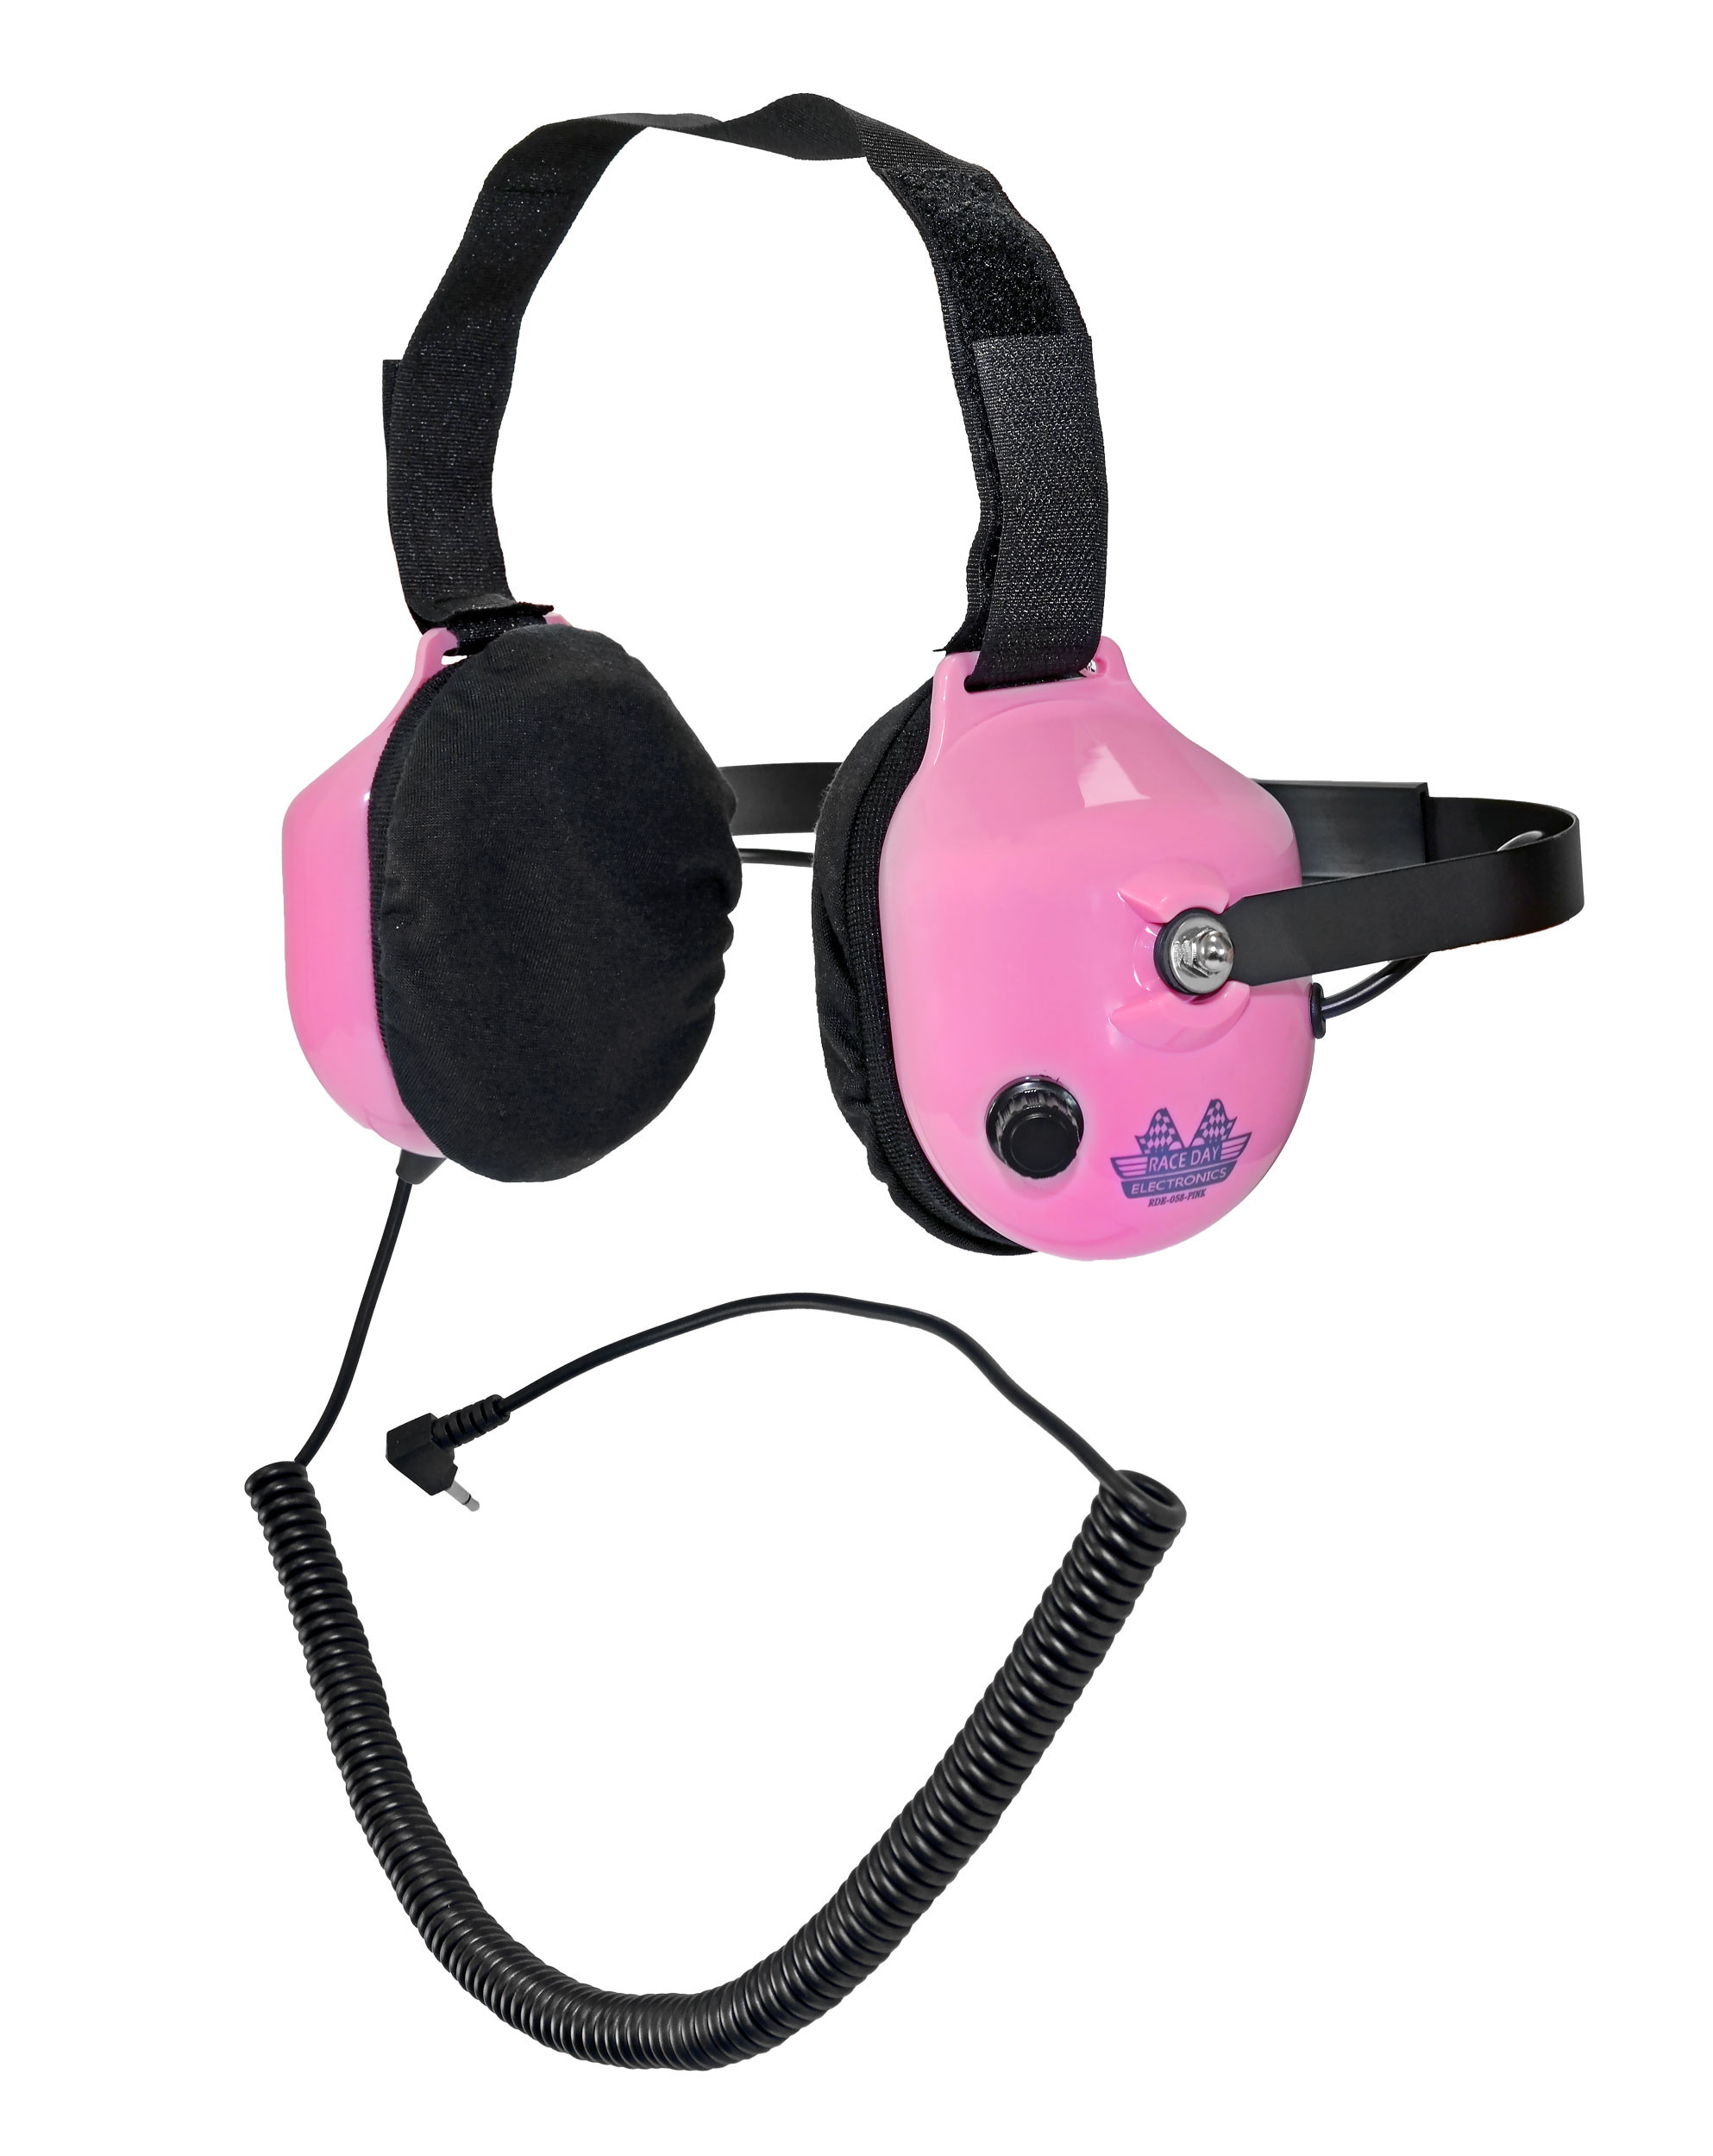 Noise-Reducing Race Scanner Headphones - Pink